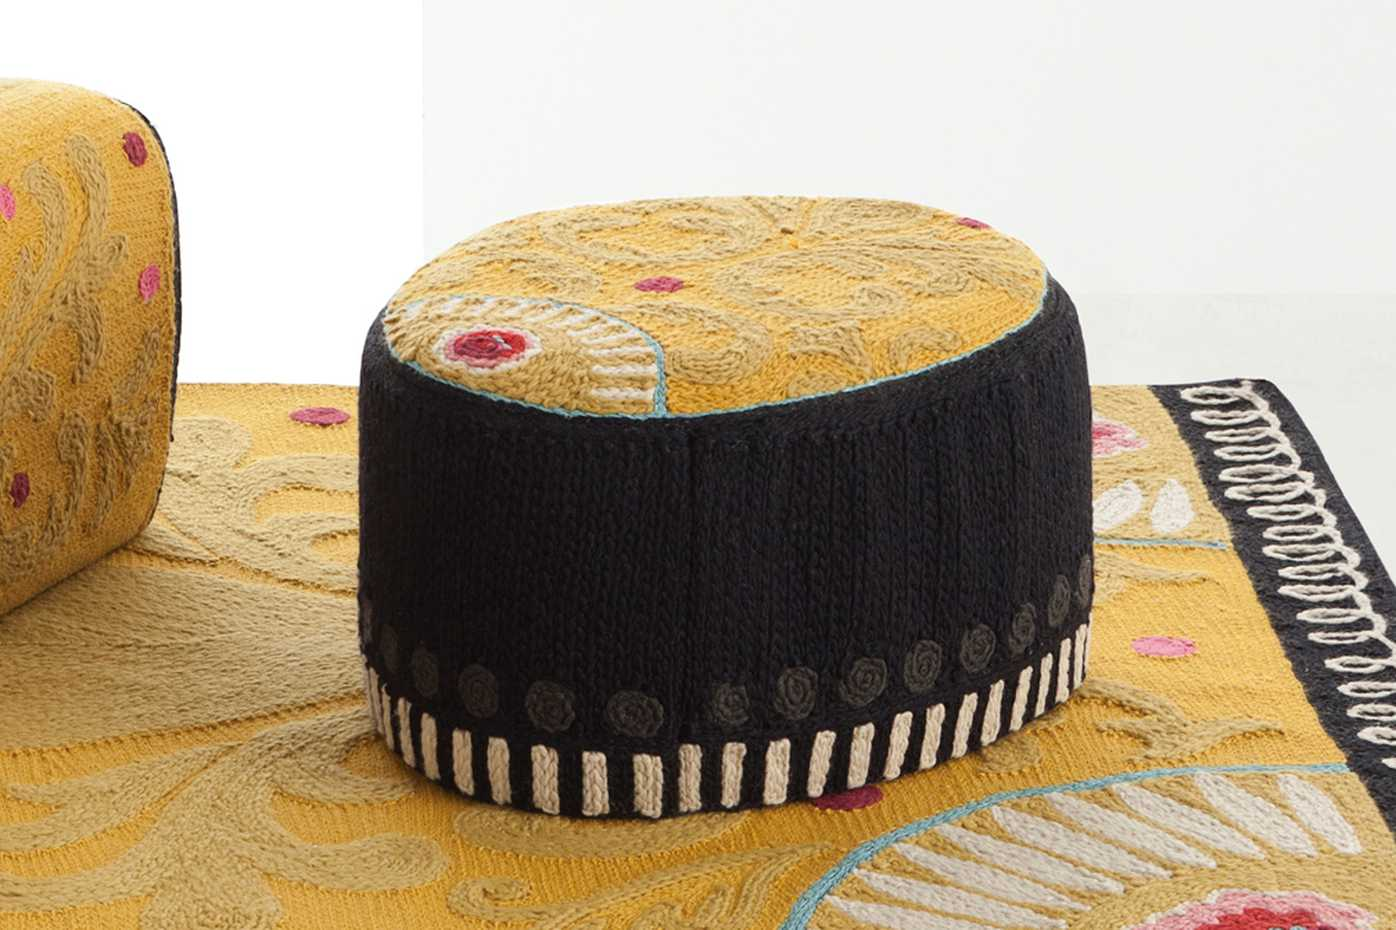 Goyescas Pouf by Gan Rugs product image 2